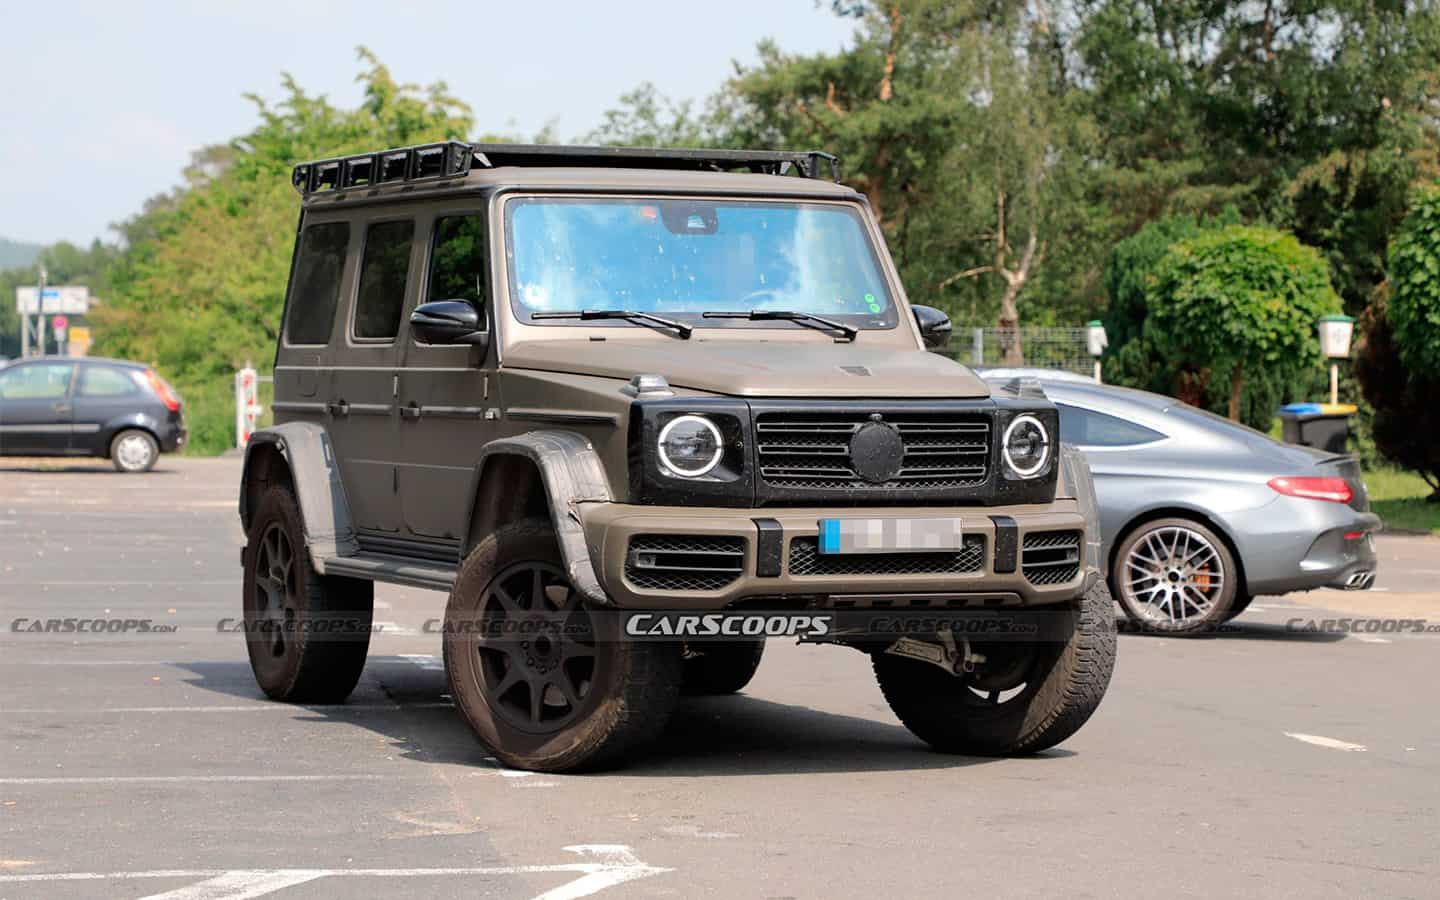 Mercedes brought to the test an extreme G-Class in a military style